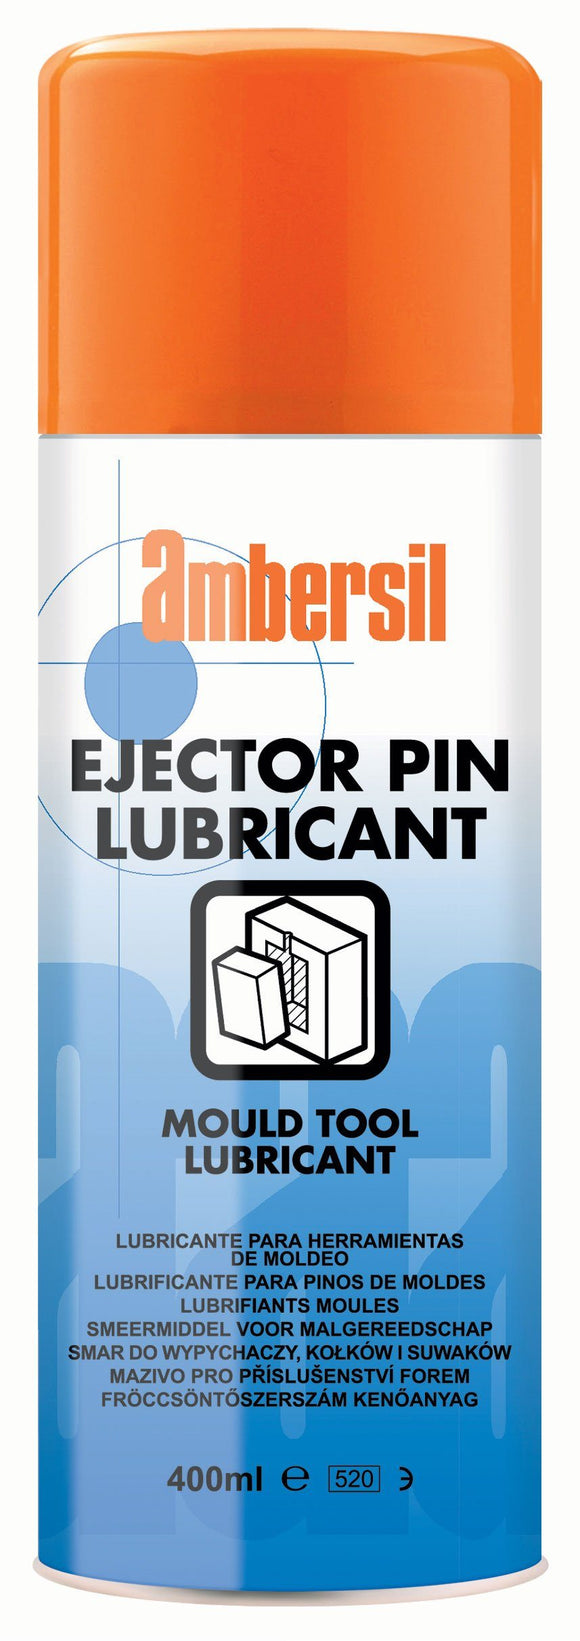 Mould_Sprays_and_lubricants - Ejector Pin Lubricant